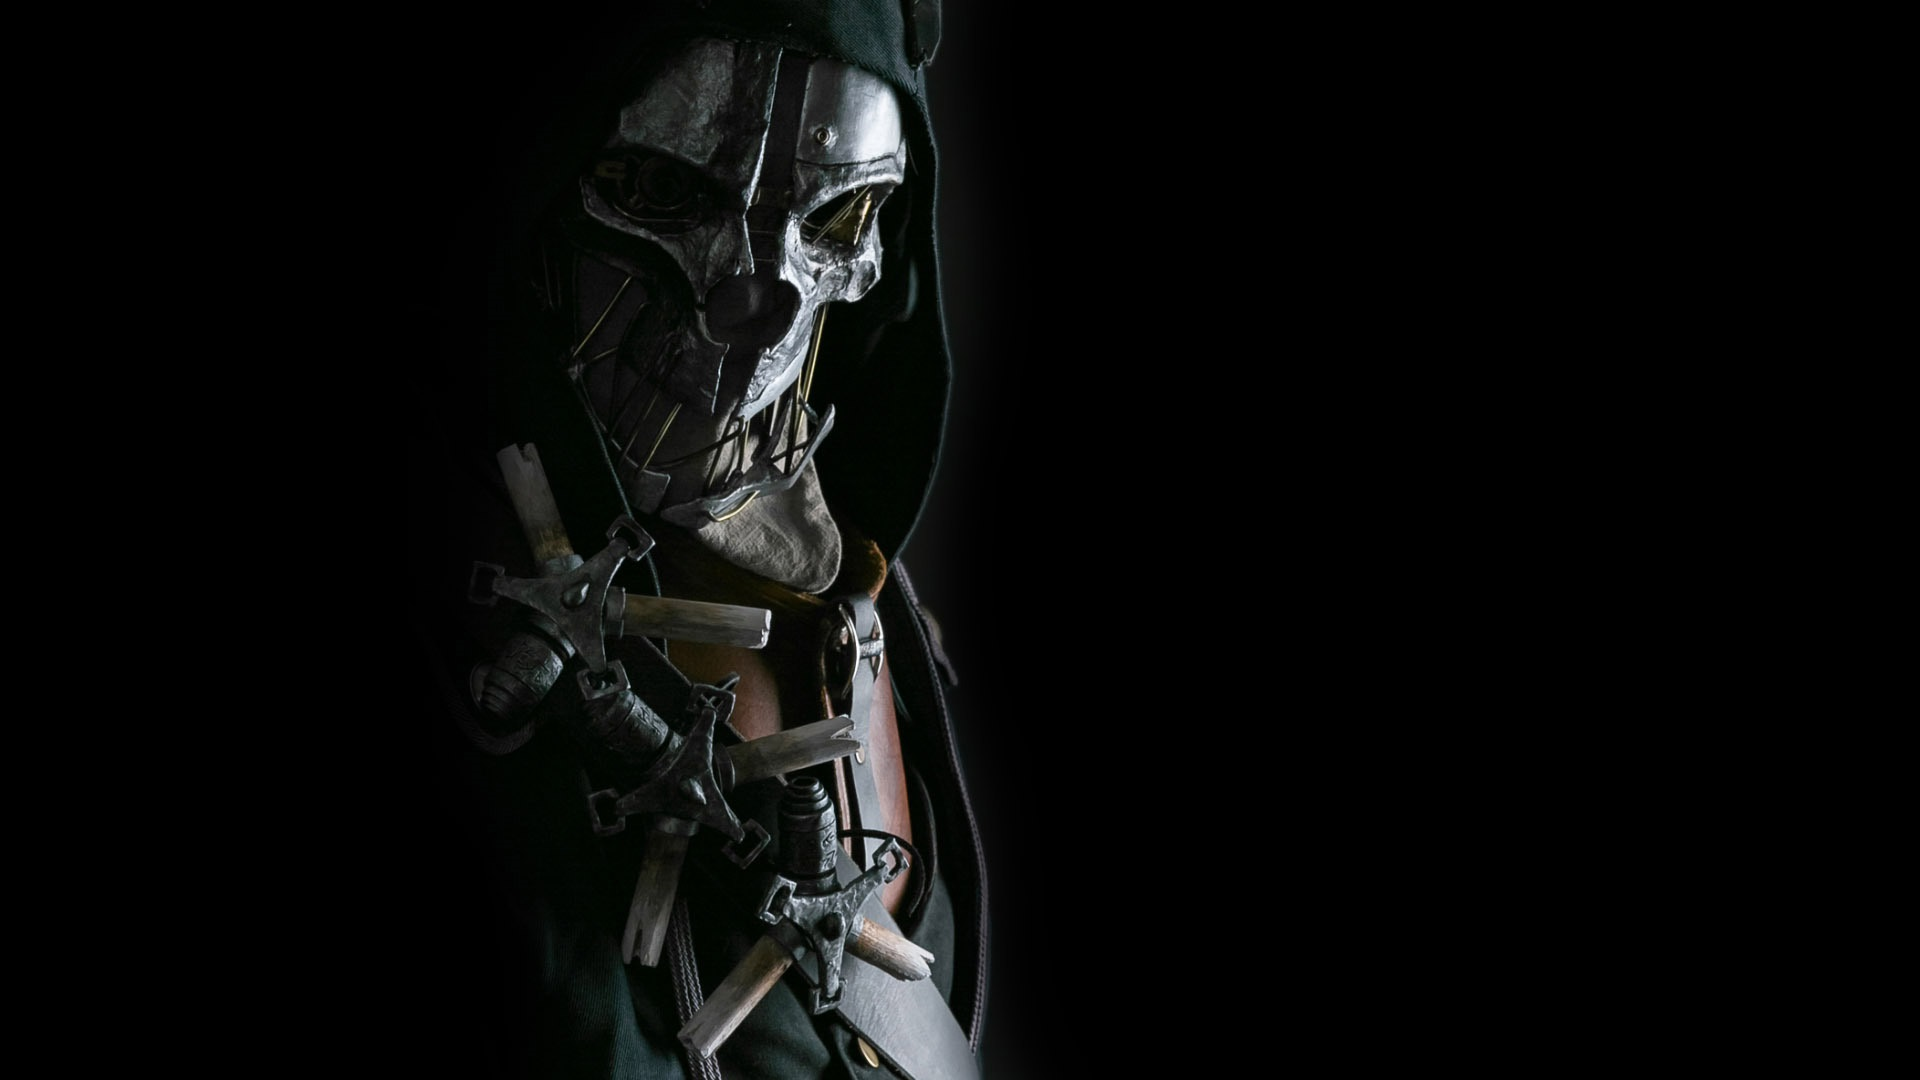 Dishonored Wallpaper HD Picture | Wallpaper OZ